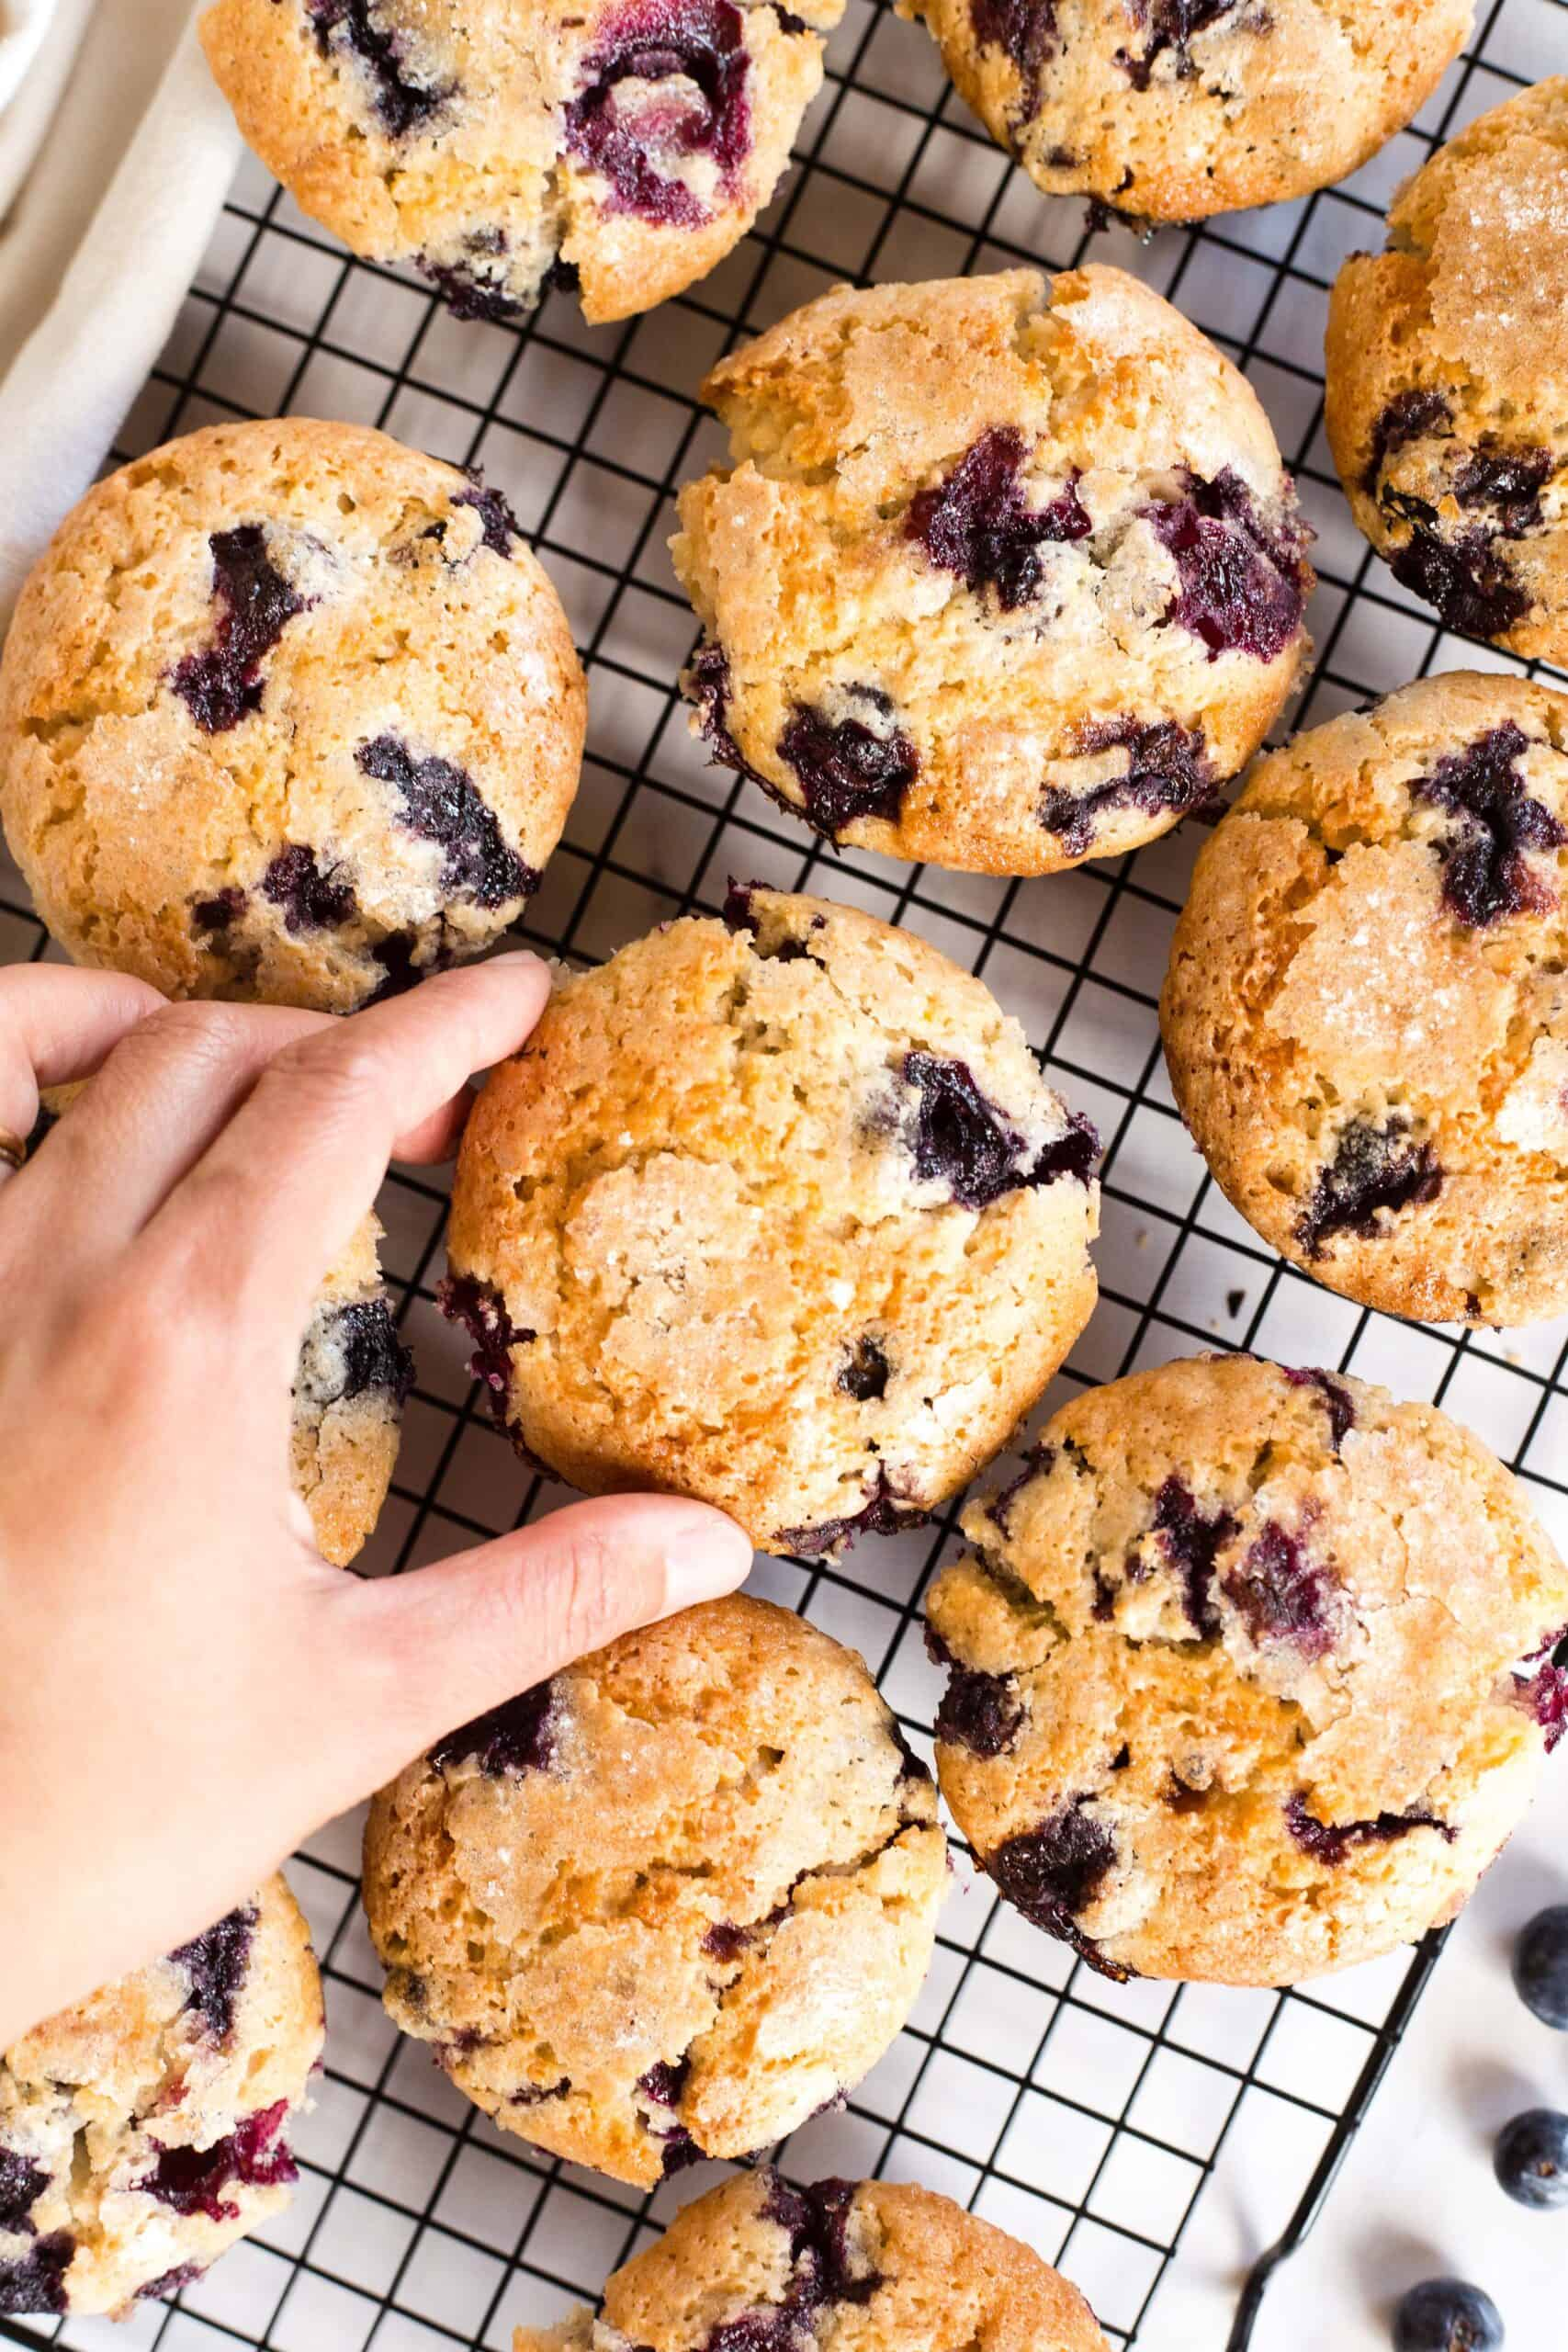 Hand reaching for a muffin from a cooling rack.